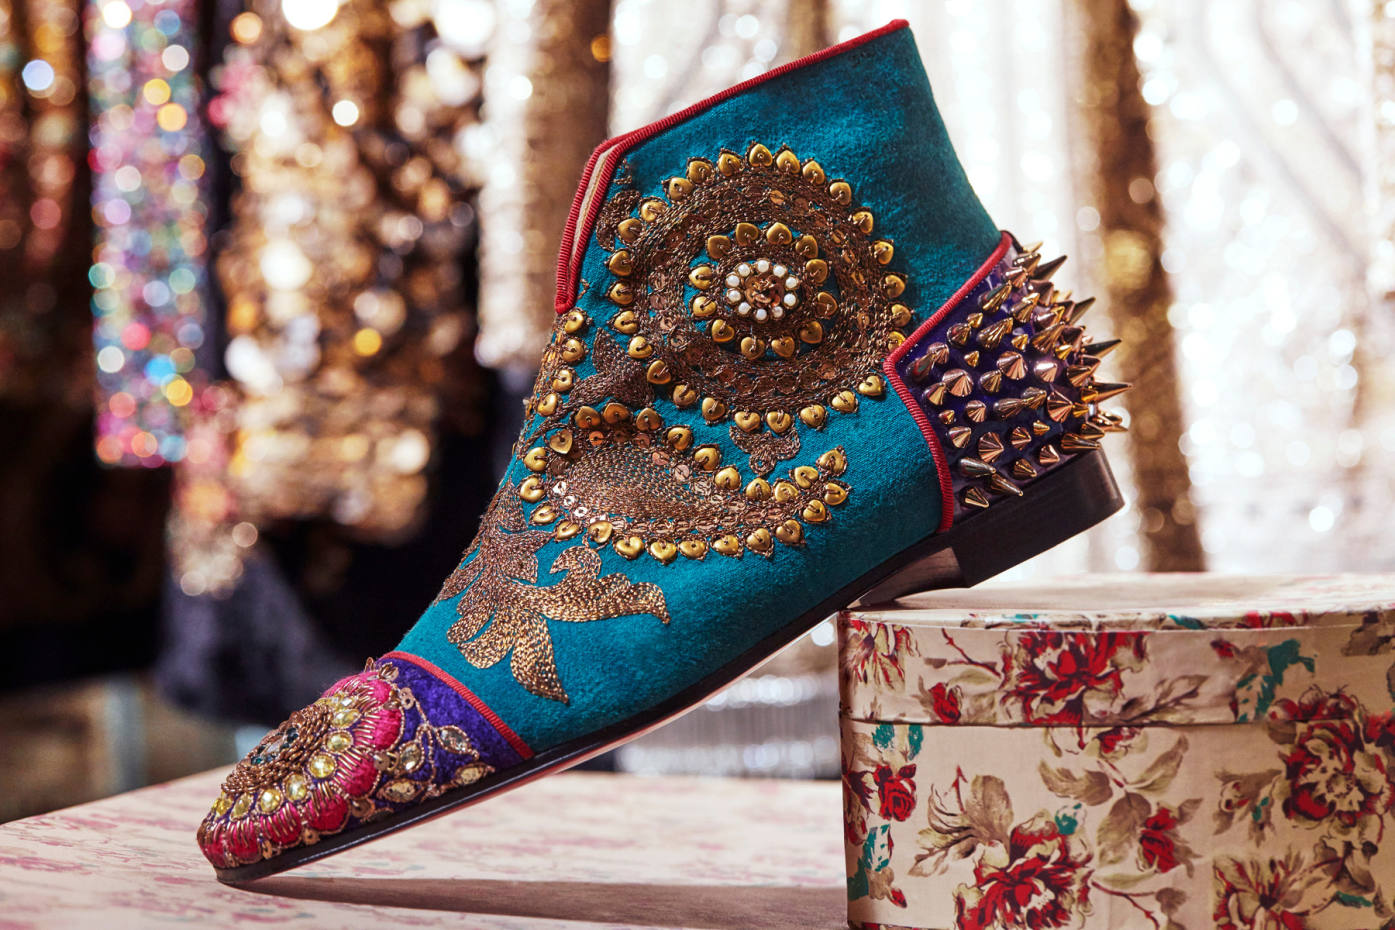 c3b6c058cbc Christian Louboutin's Indian couture collaboration | How To Spend It